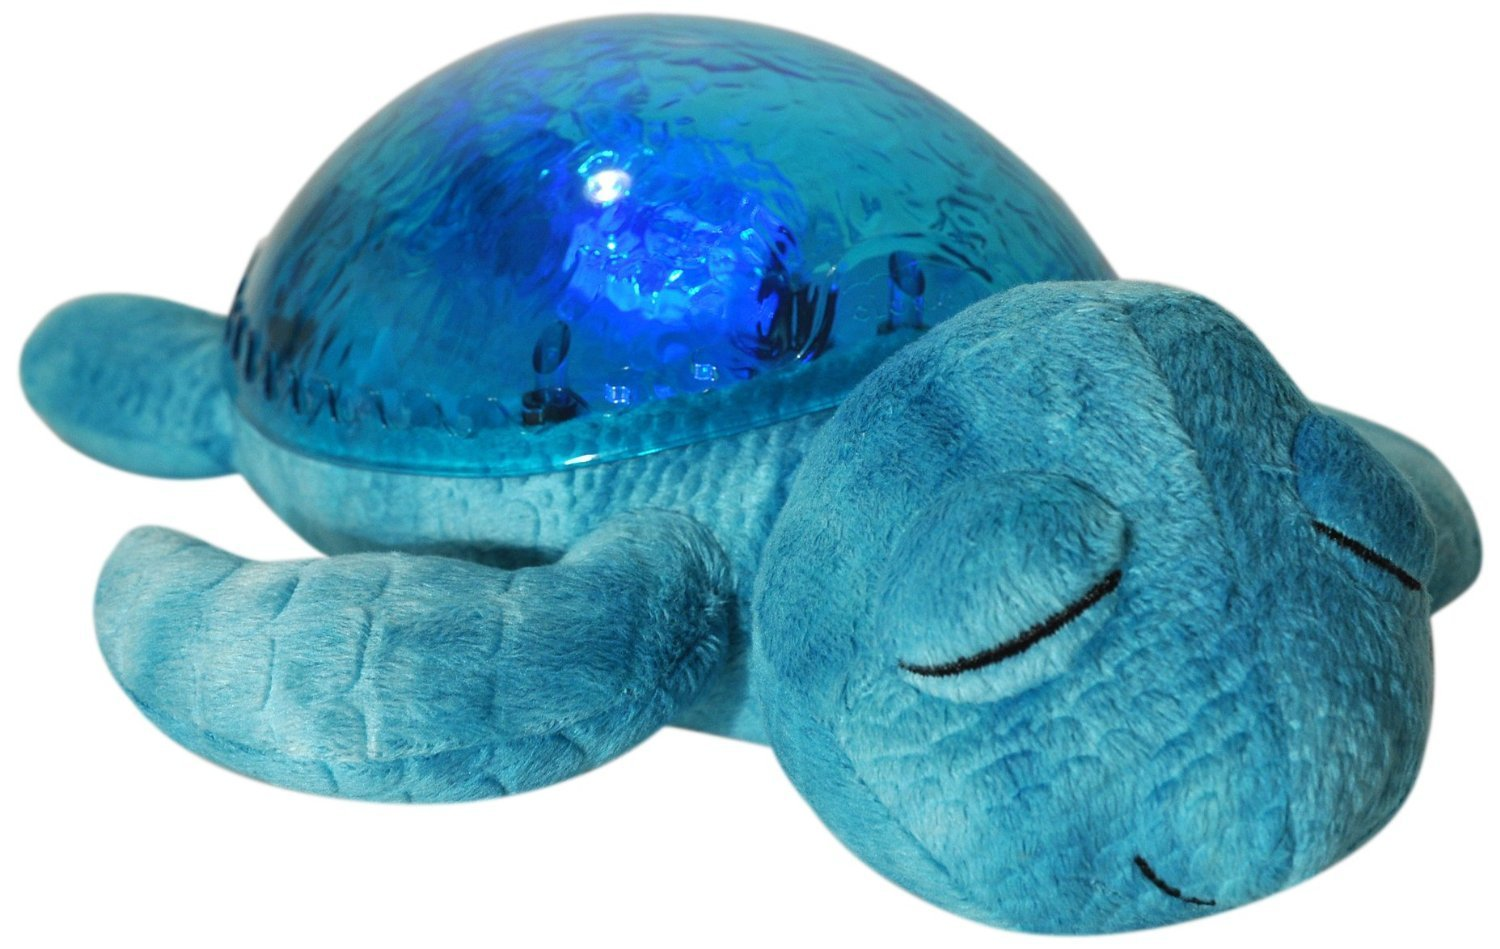 71nqU1D%2B6wL._SL1500_ Some of the majestic features of  tranquil turtle sleep sound soother